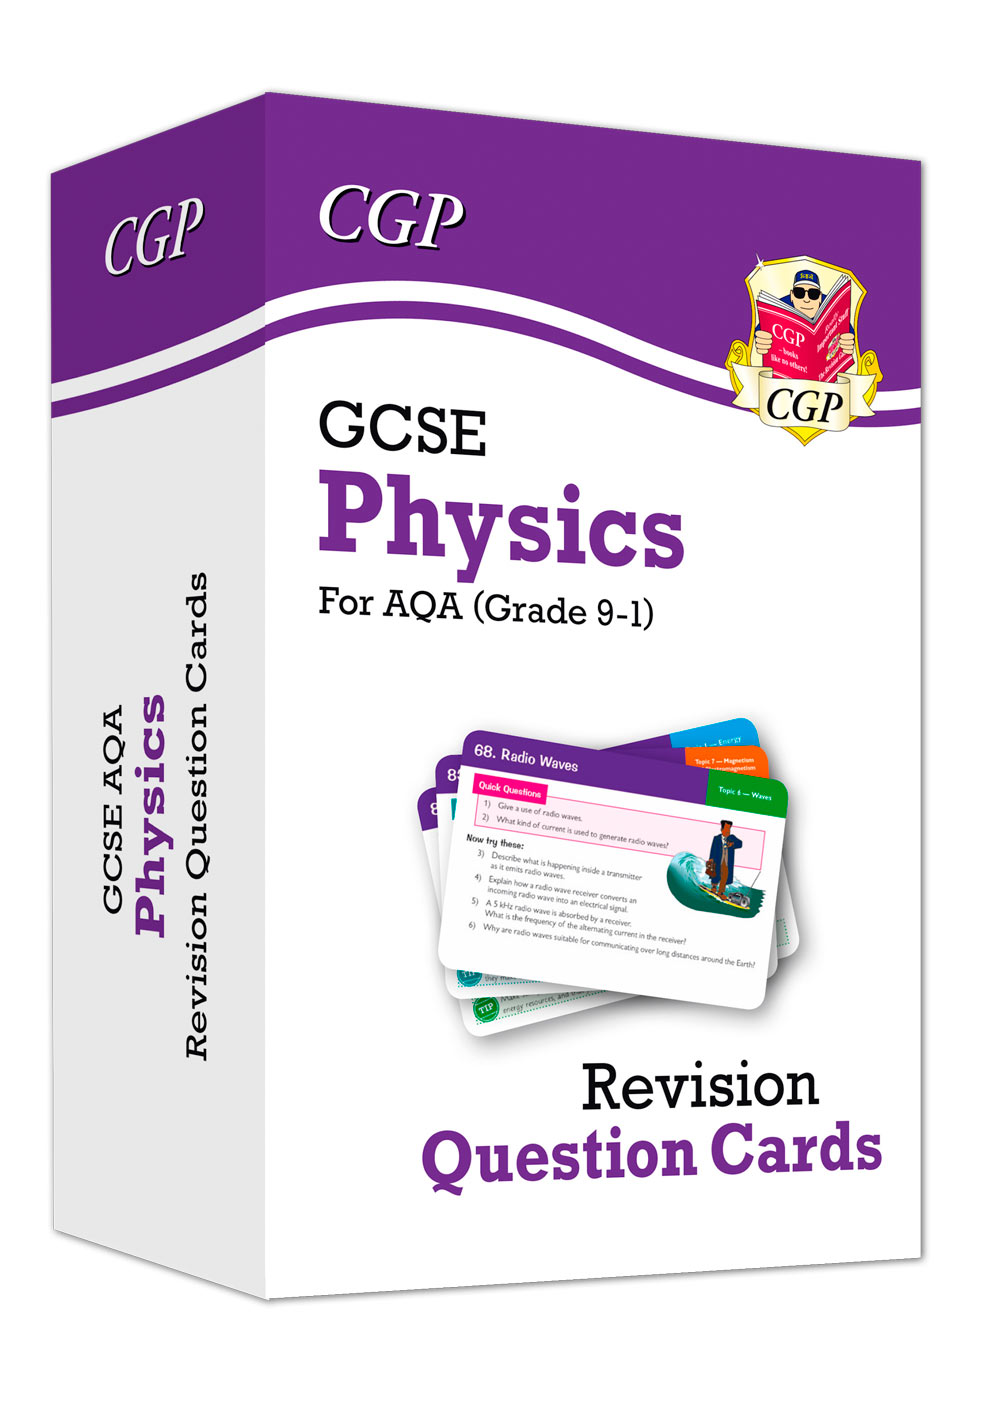 PAF41 - New 9-1 GCSE Physics AQA Revision Question Cards